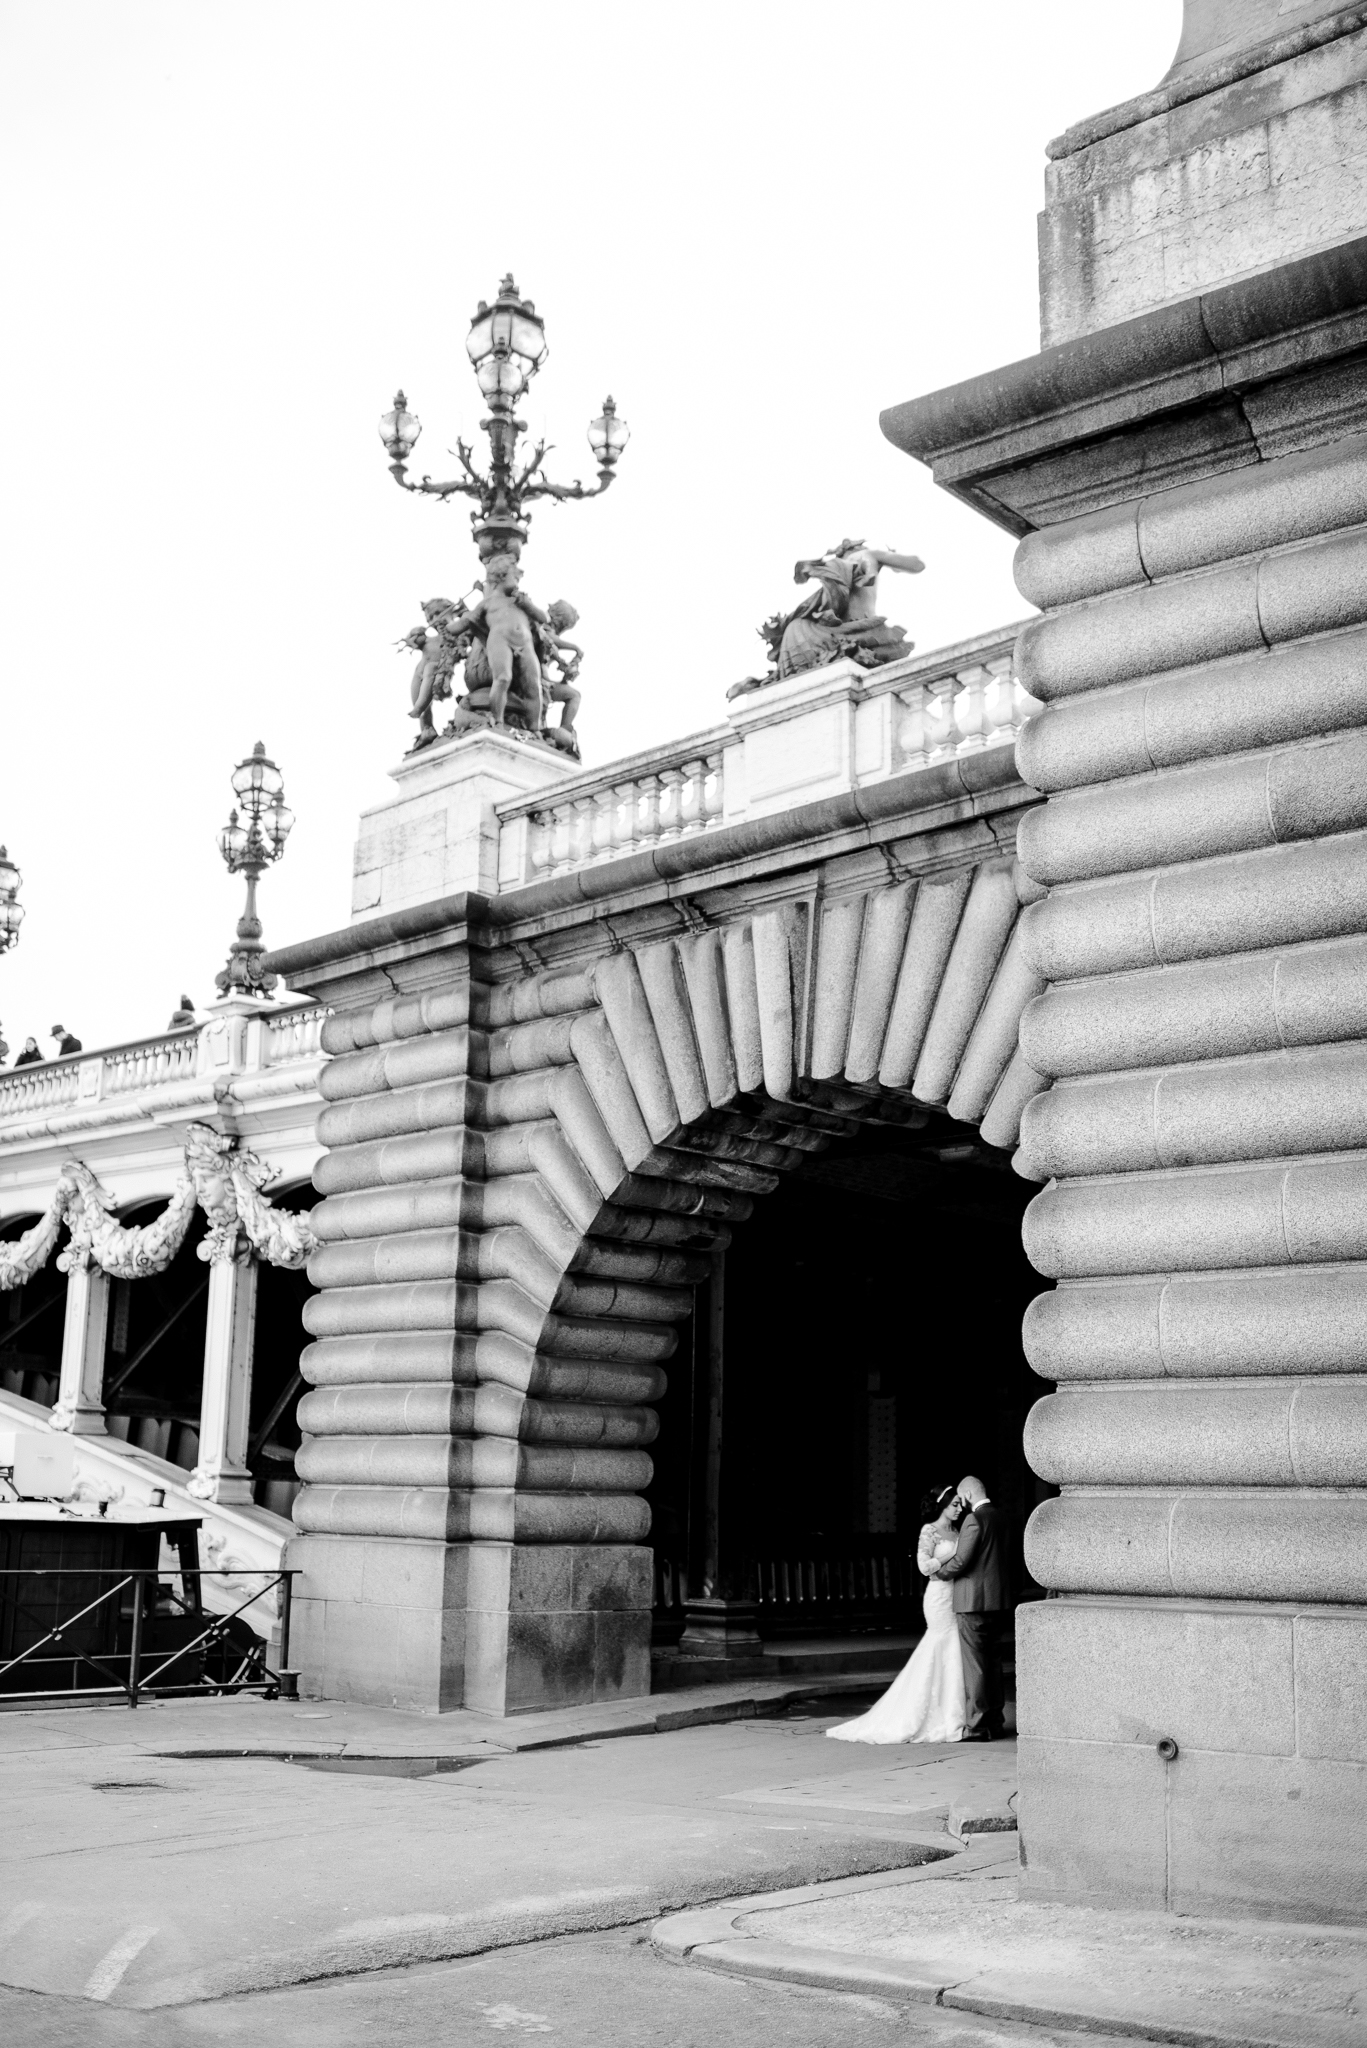 destination-pont-alexandre-III-bridge-paris-france-wedding-photo-5